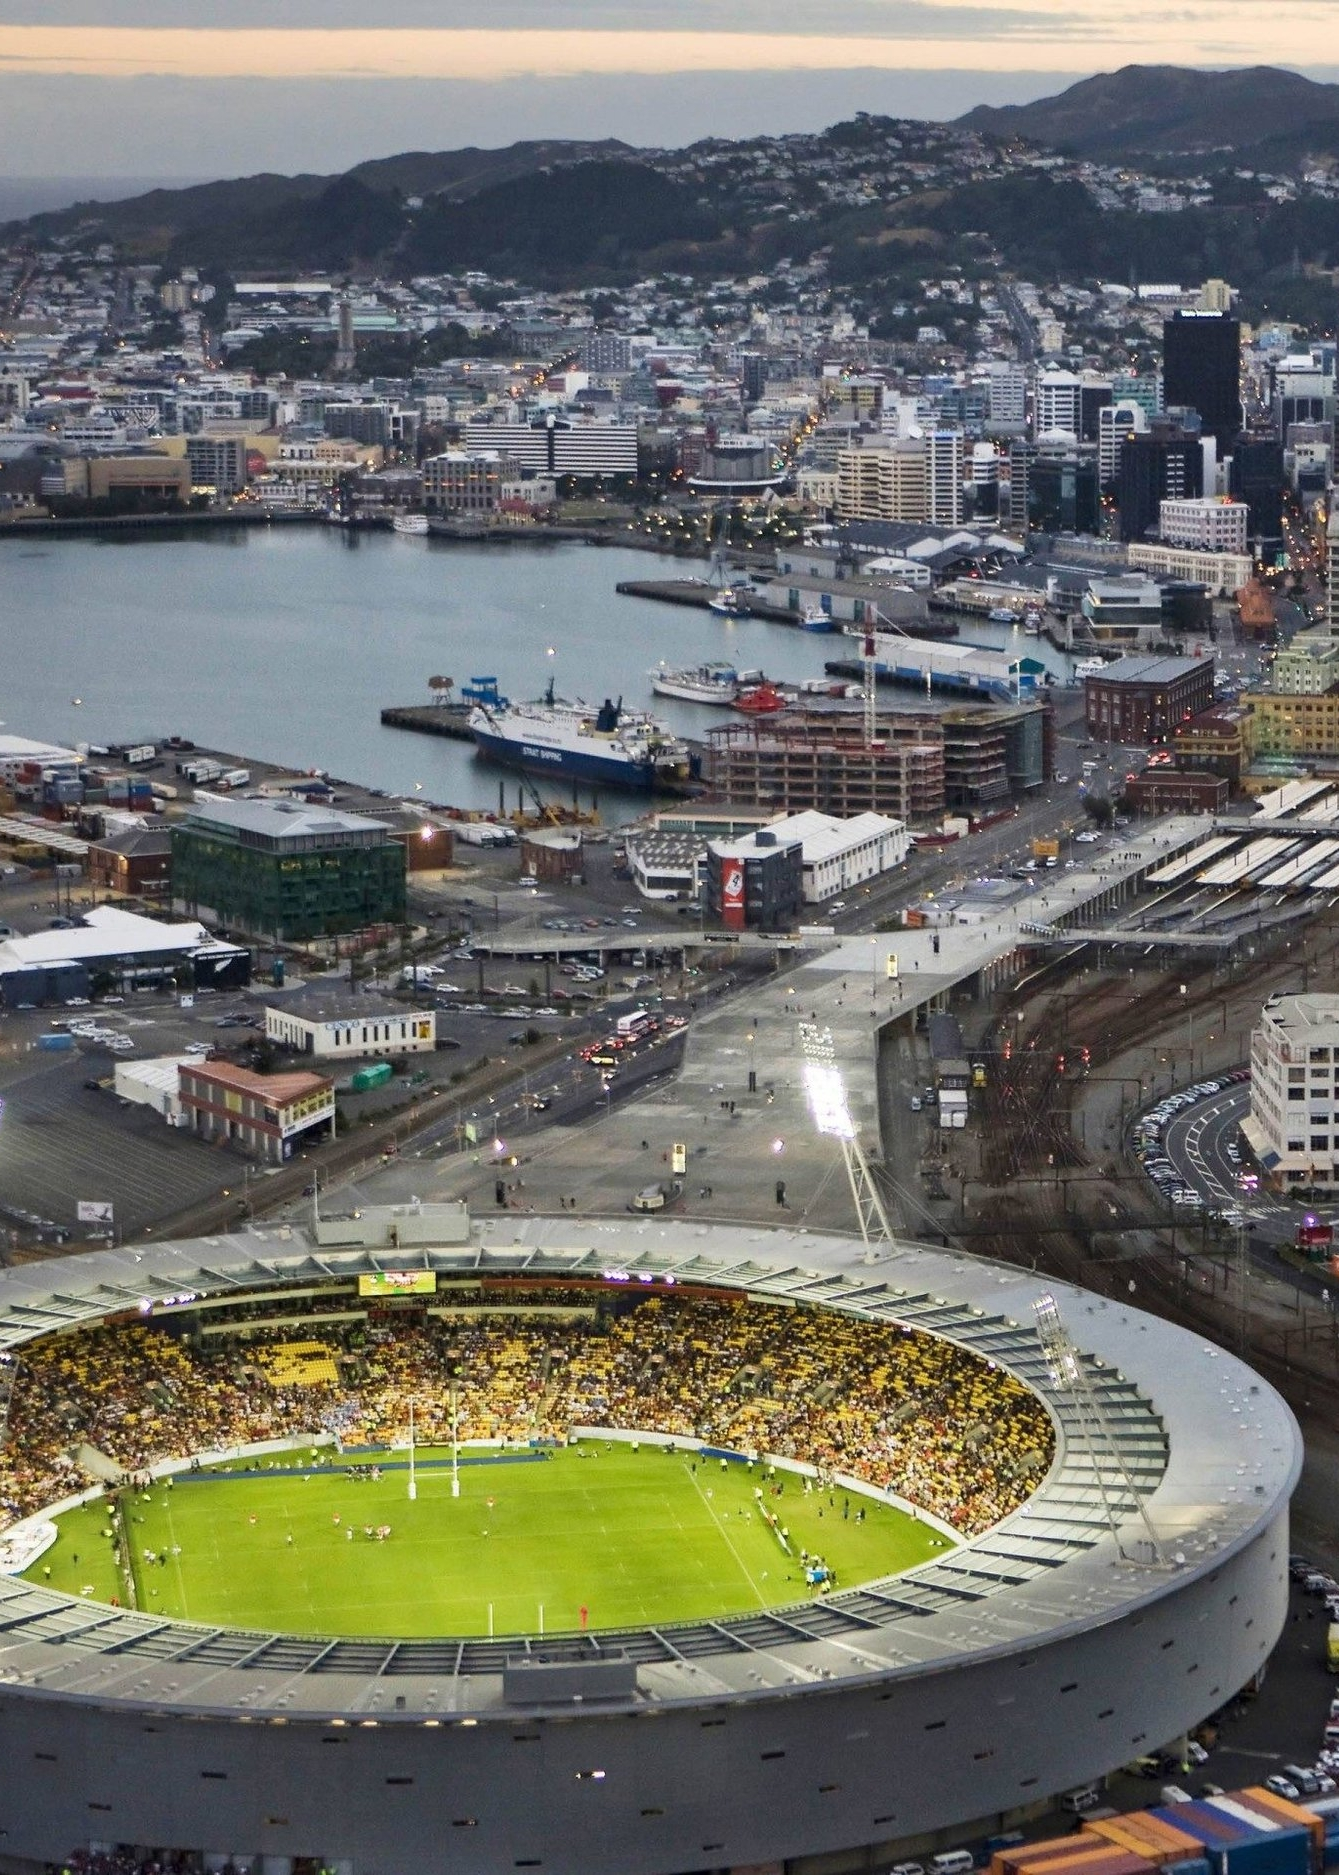 Port-stadium-at-dusk-Wellington-city-walking-tour-2014-05-11-34.jpg